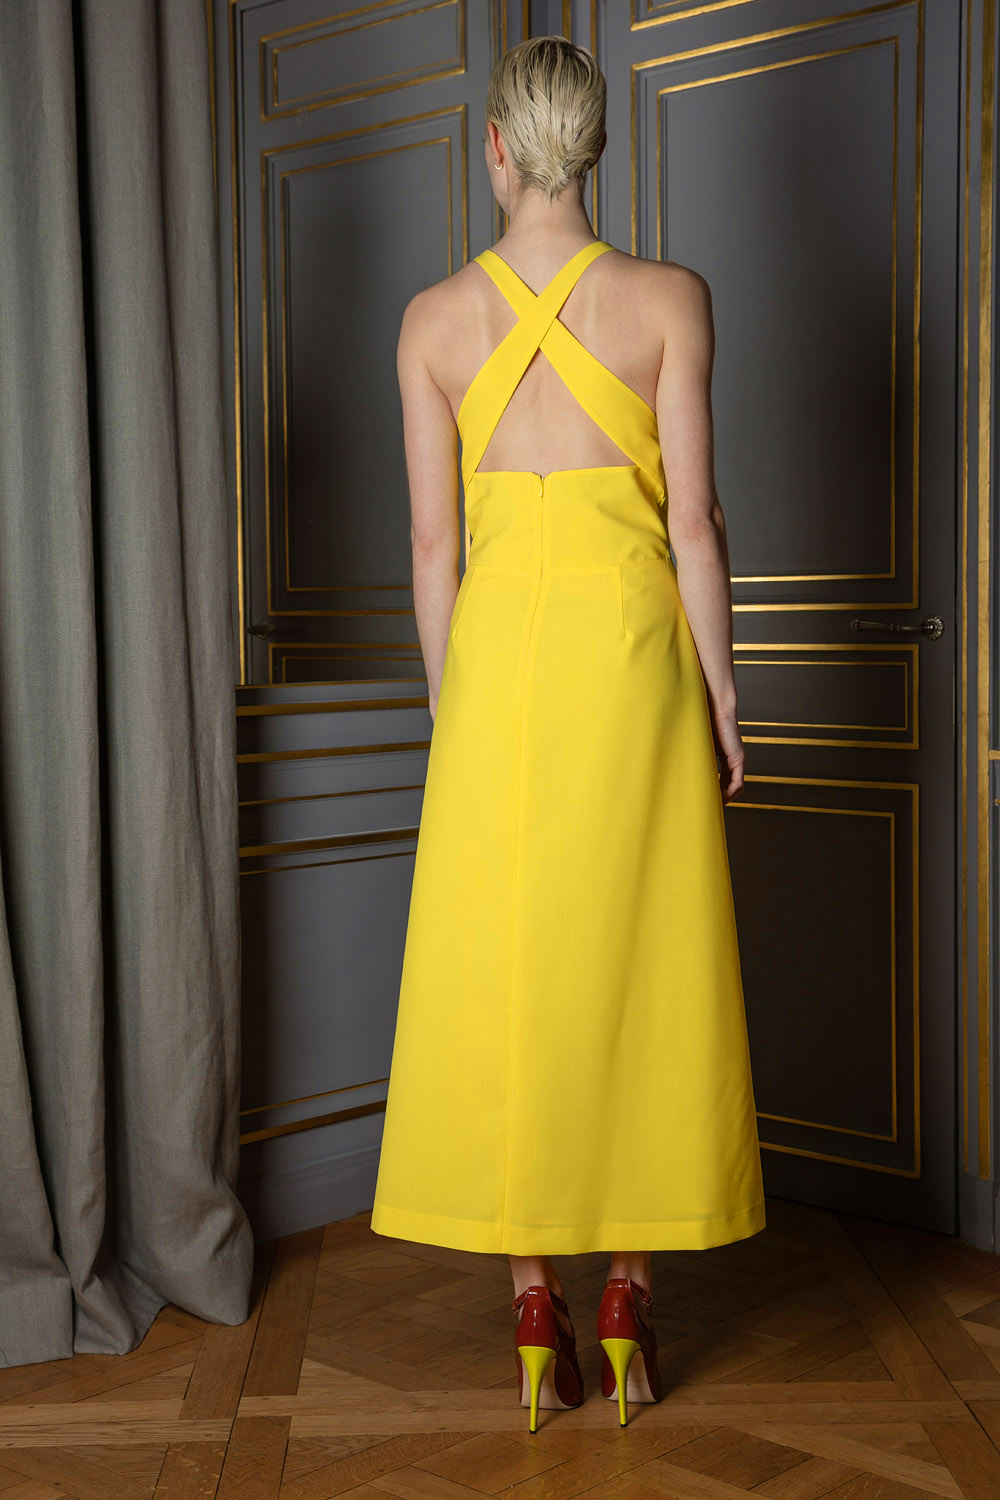 Yellow A-line sleeveless cross back straps dress with bows